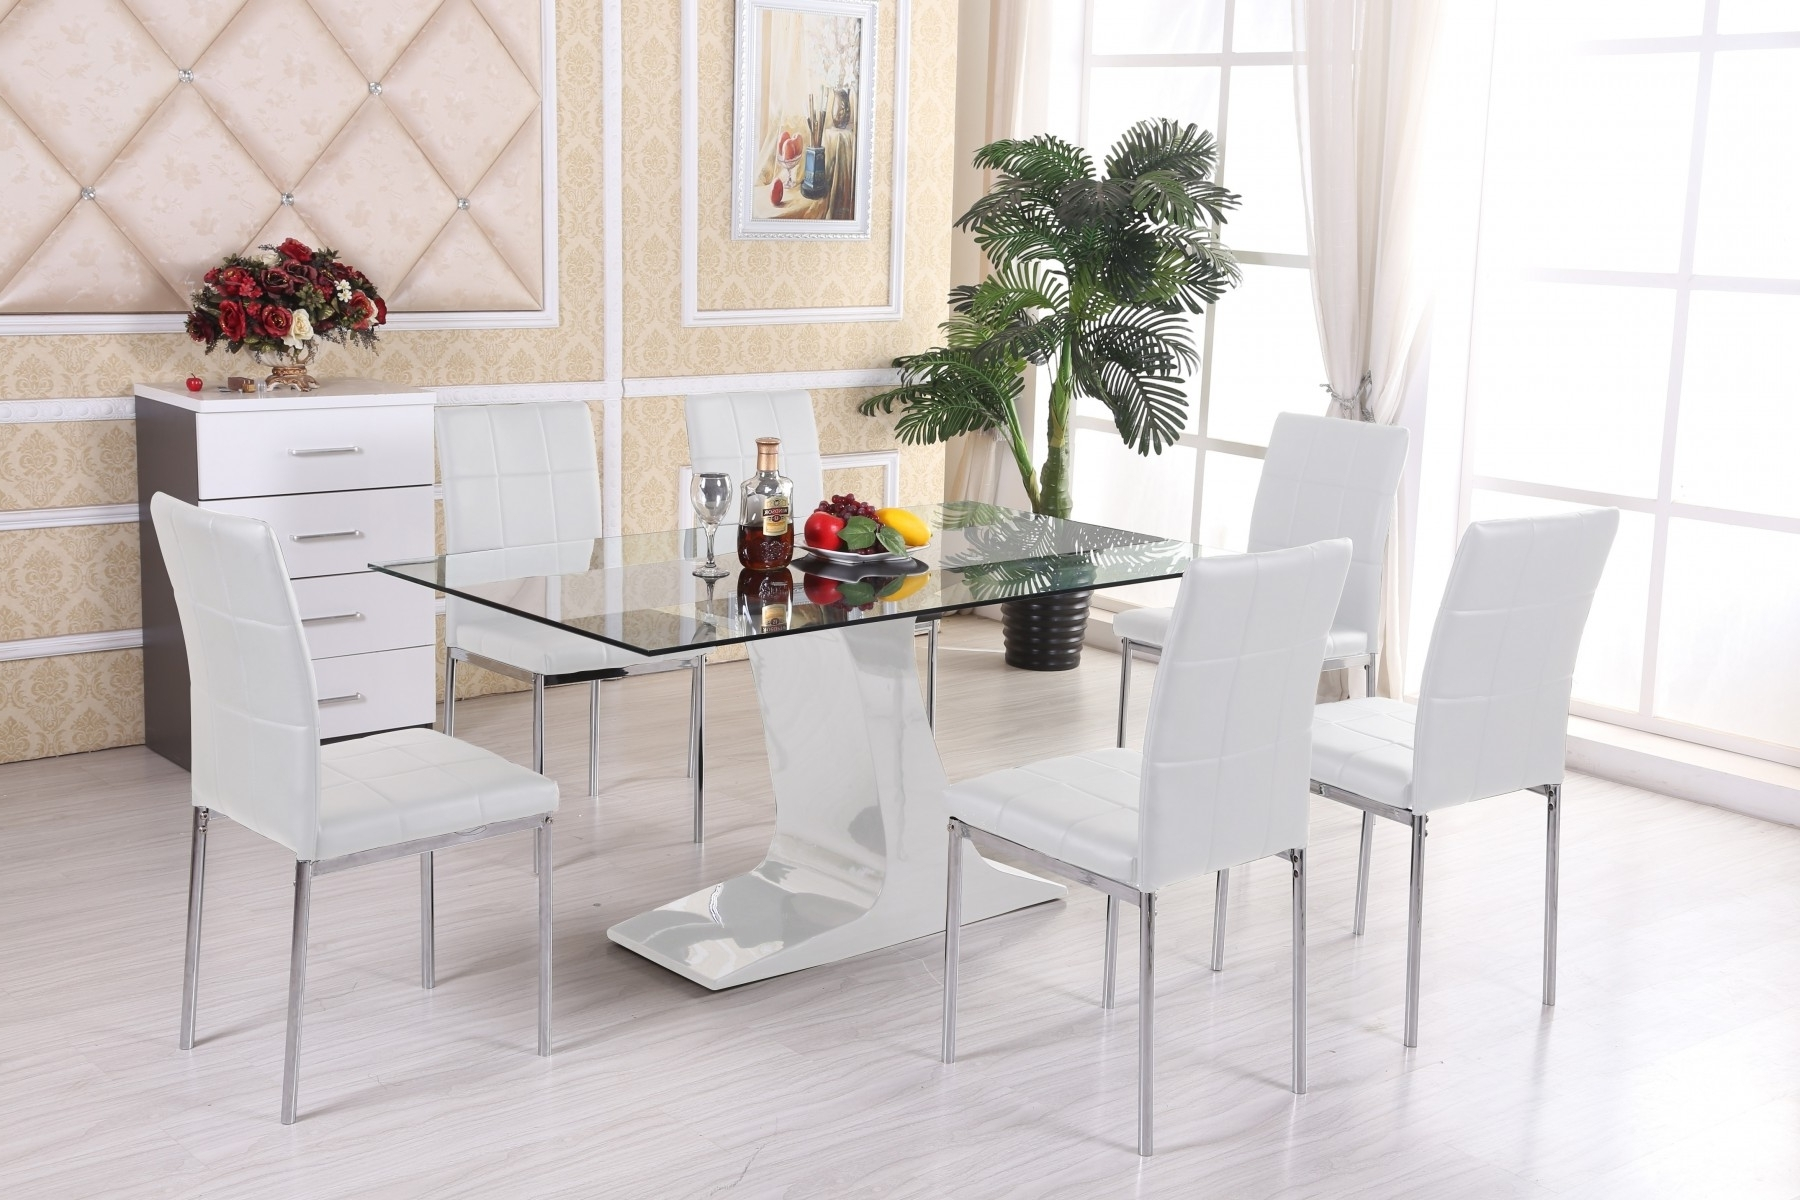 Widely Used Extendable Glass Dining Tables And 6 Chairs Pertaining To 4 Optimal Choices In Glass Dining Table And Chairs – Blogbeen (View 25 of 25)